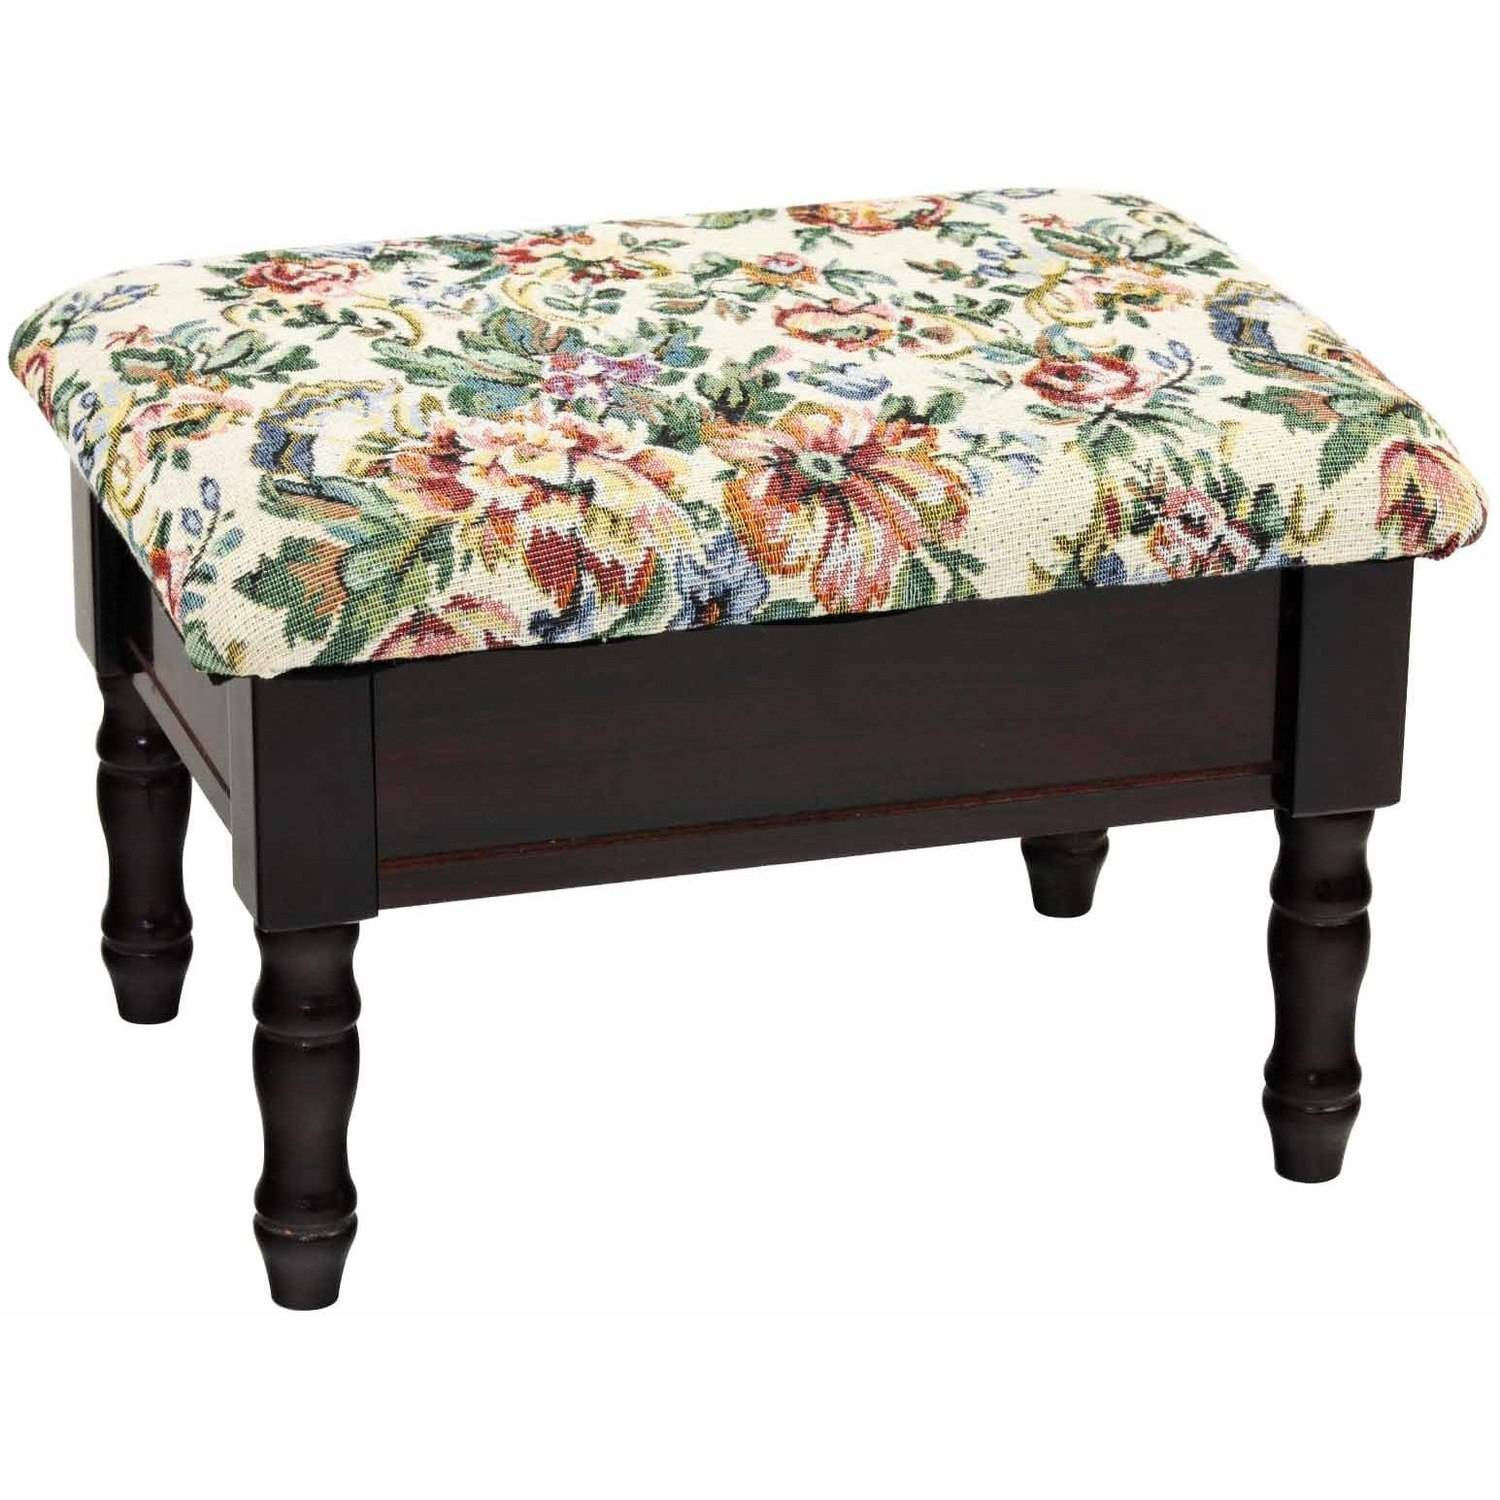 Home Craft Footstool with Storage, Multiple Colors